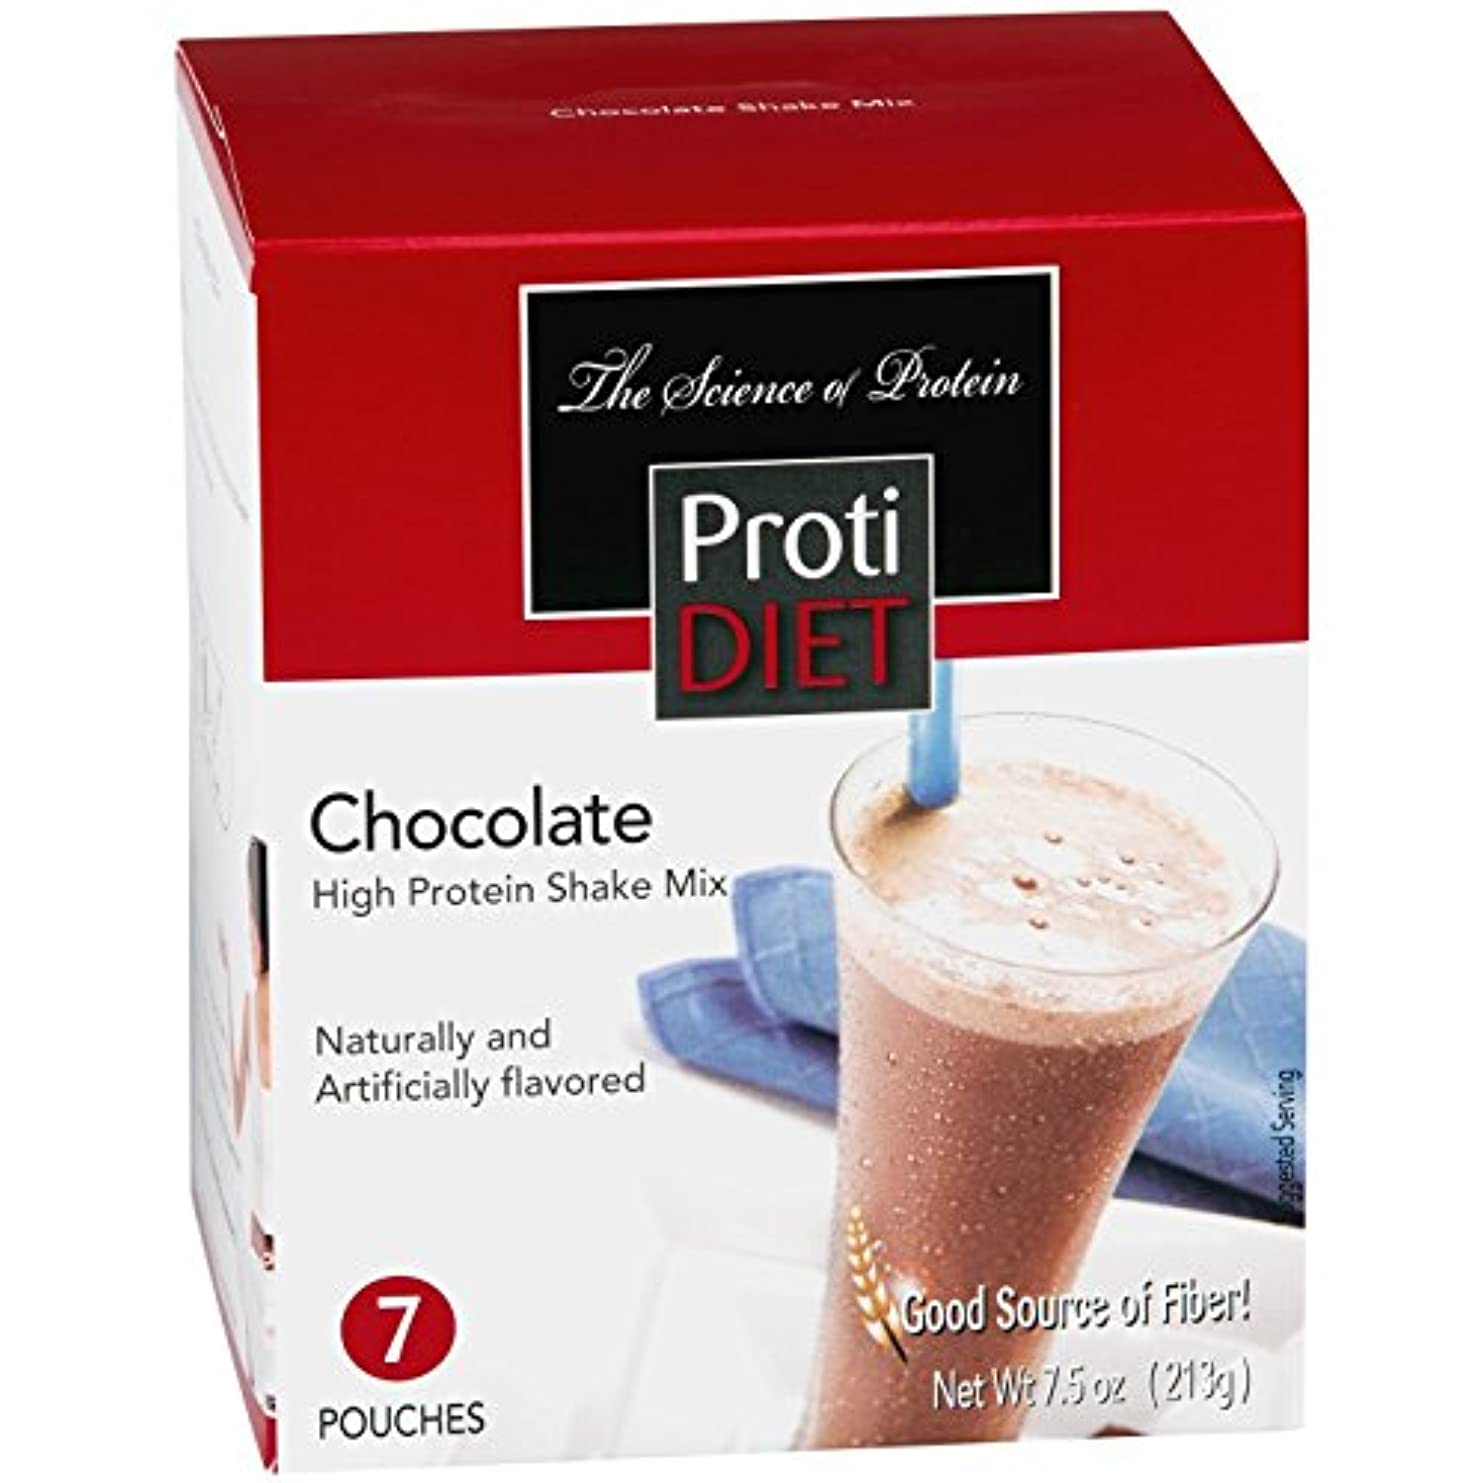 Proti Diet Chocolate Shake (7 pouches per box) Net Wt 7.5oz (213g) by Protidiet